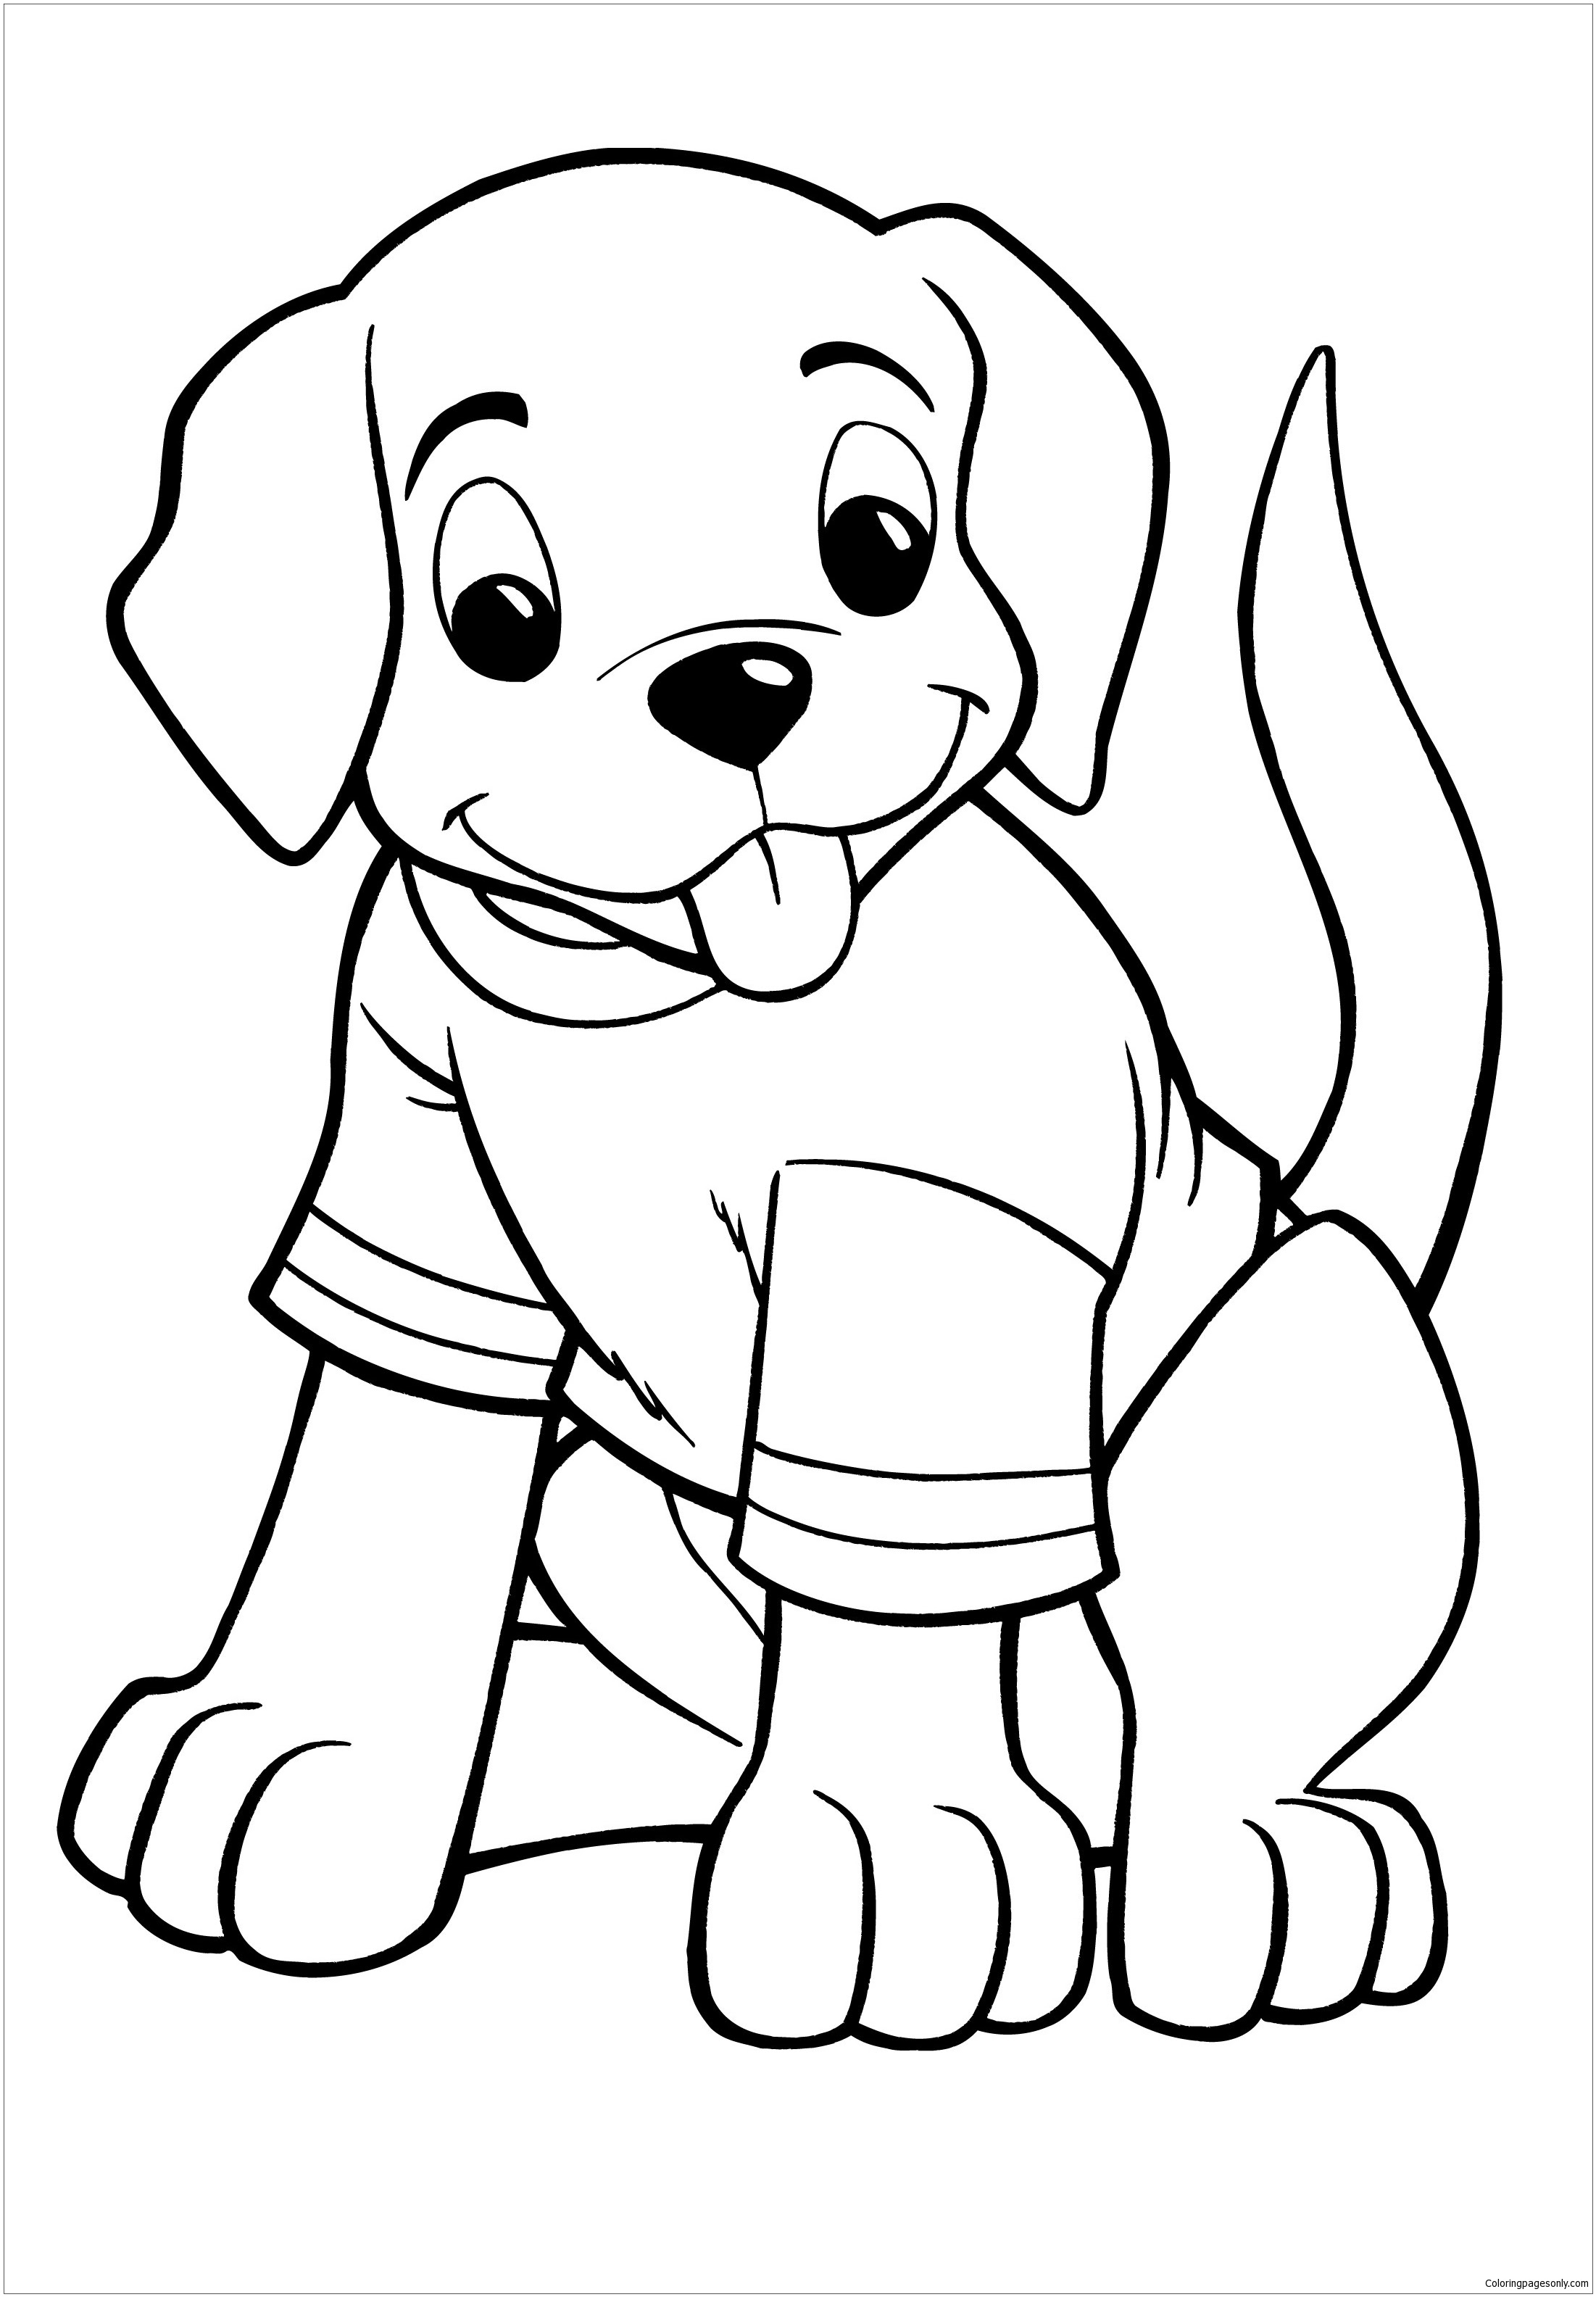 Great Puppy Coloring Page - Free Coloring Pages Online